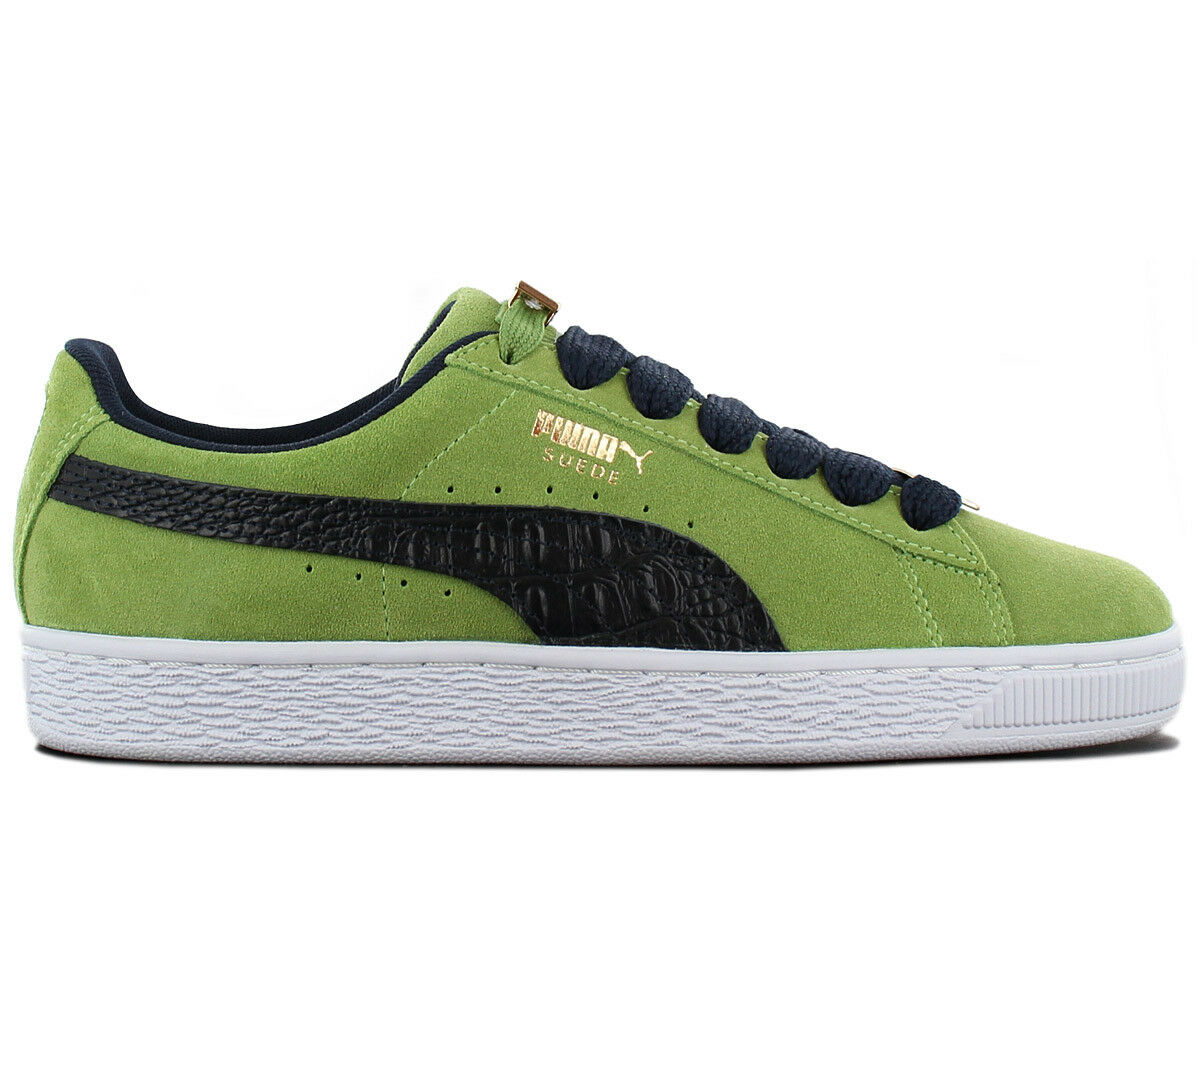 Puma Suede Classic B-Boy Fabulous Trainers shoes 365362-03 Green New